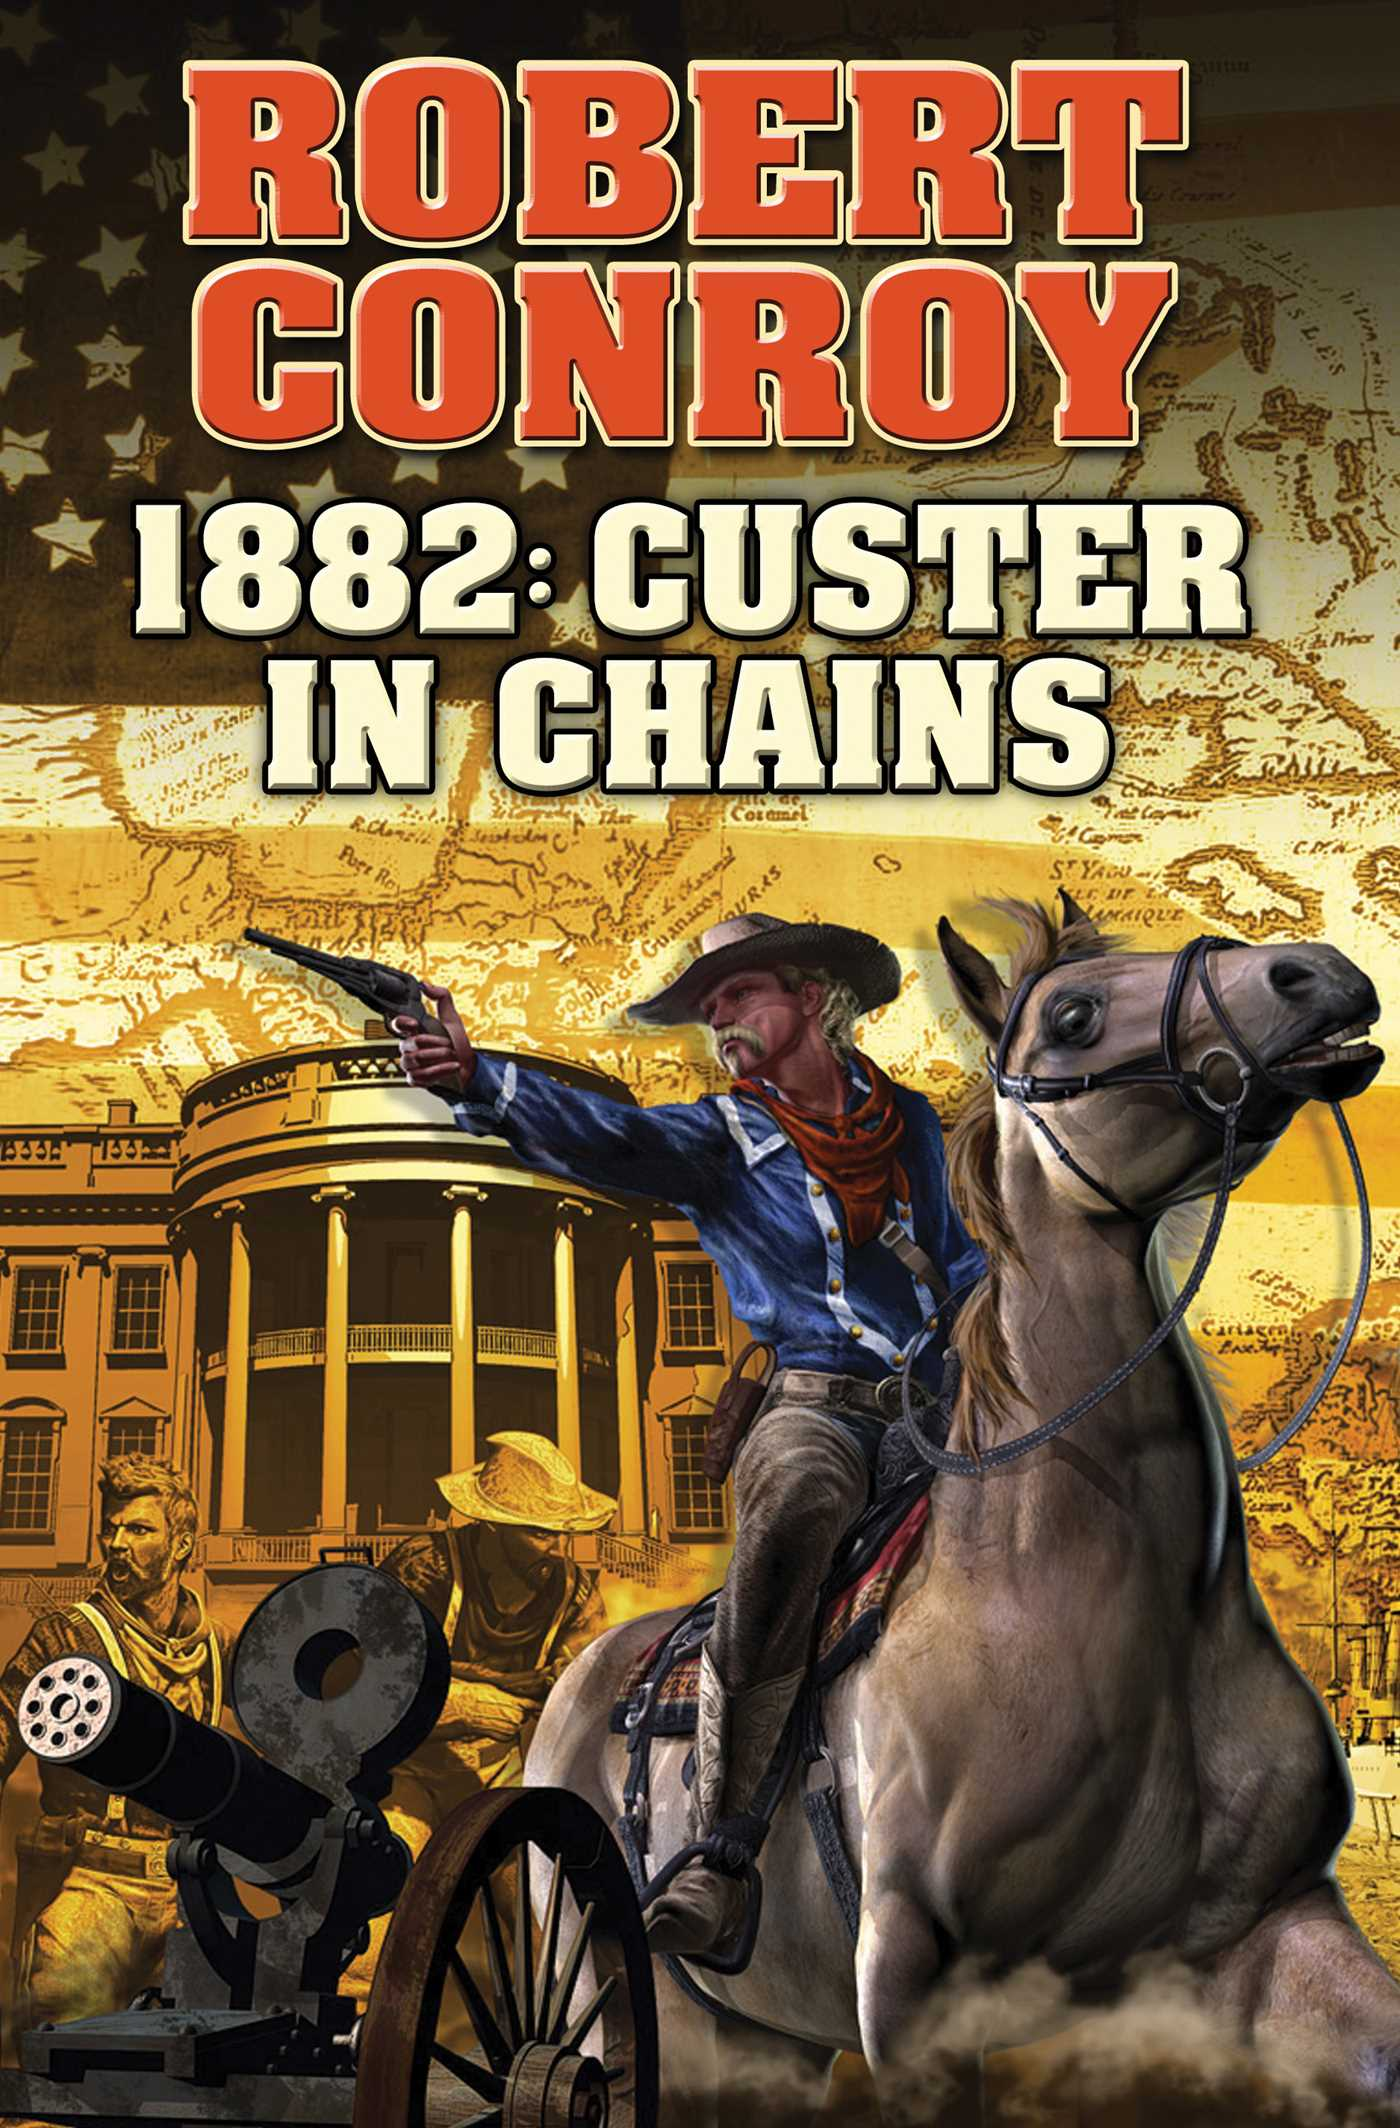 Image result for 1882: custer in chains robert conroy